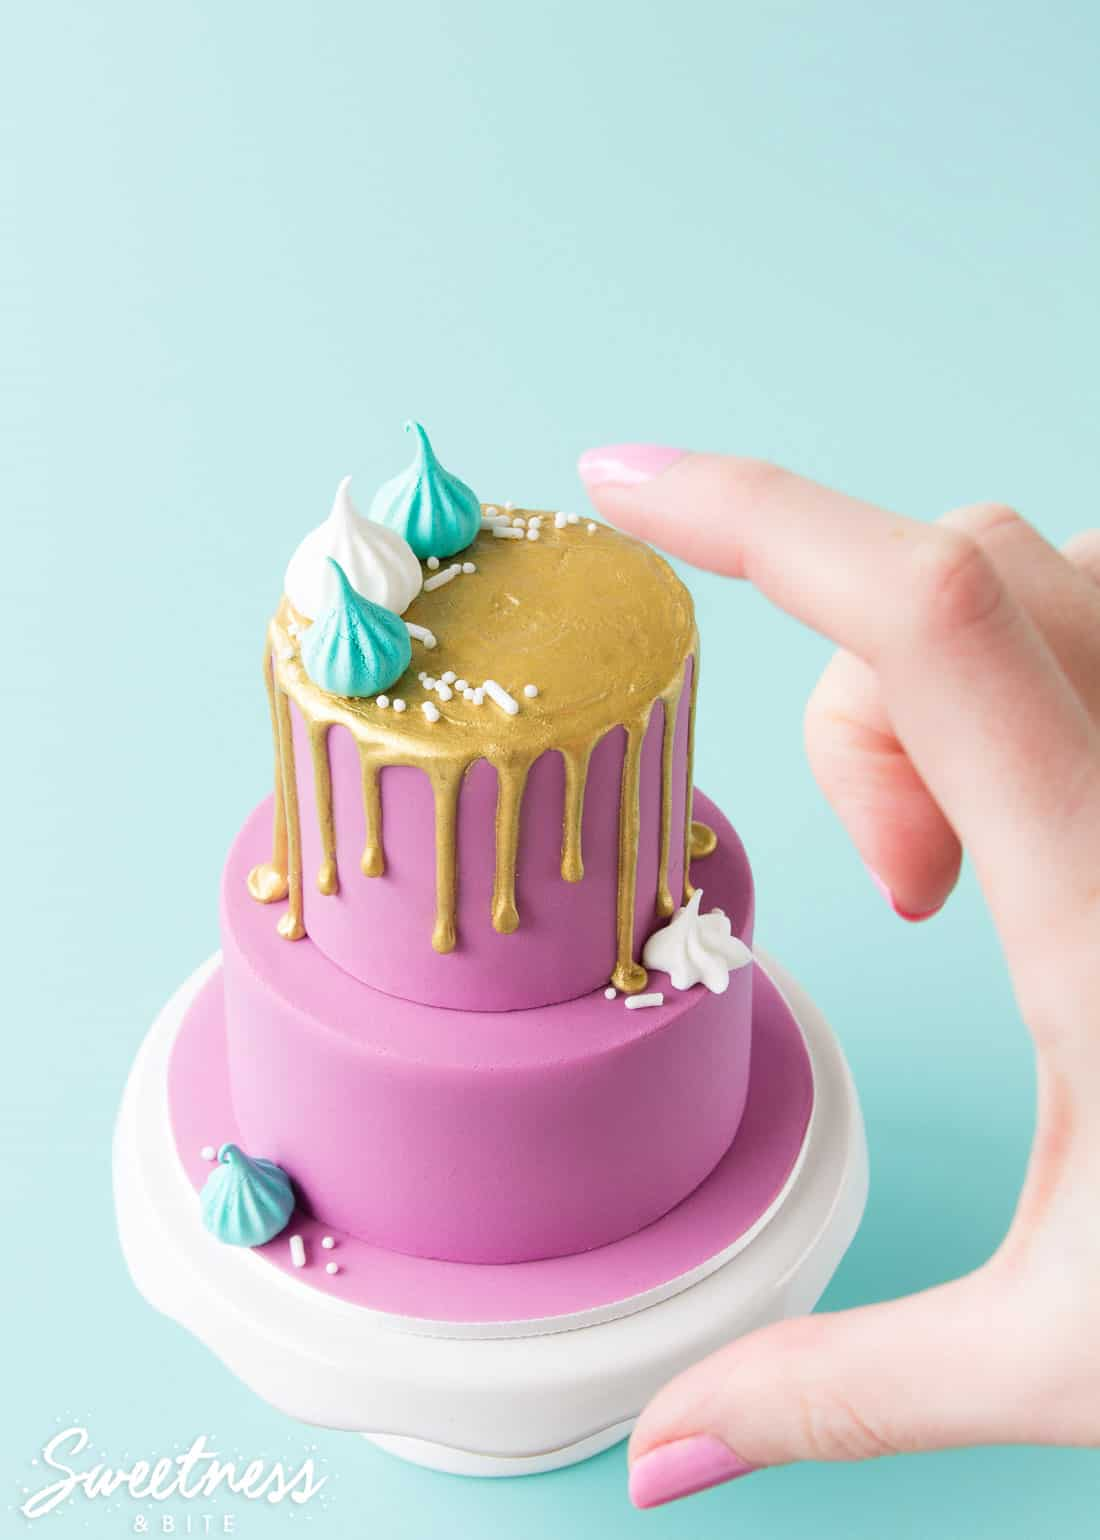 How to Make a Mini Drip Cake. Tutorial by Sweetness & Bite